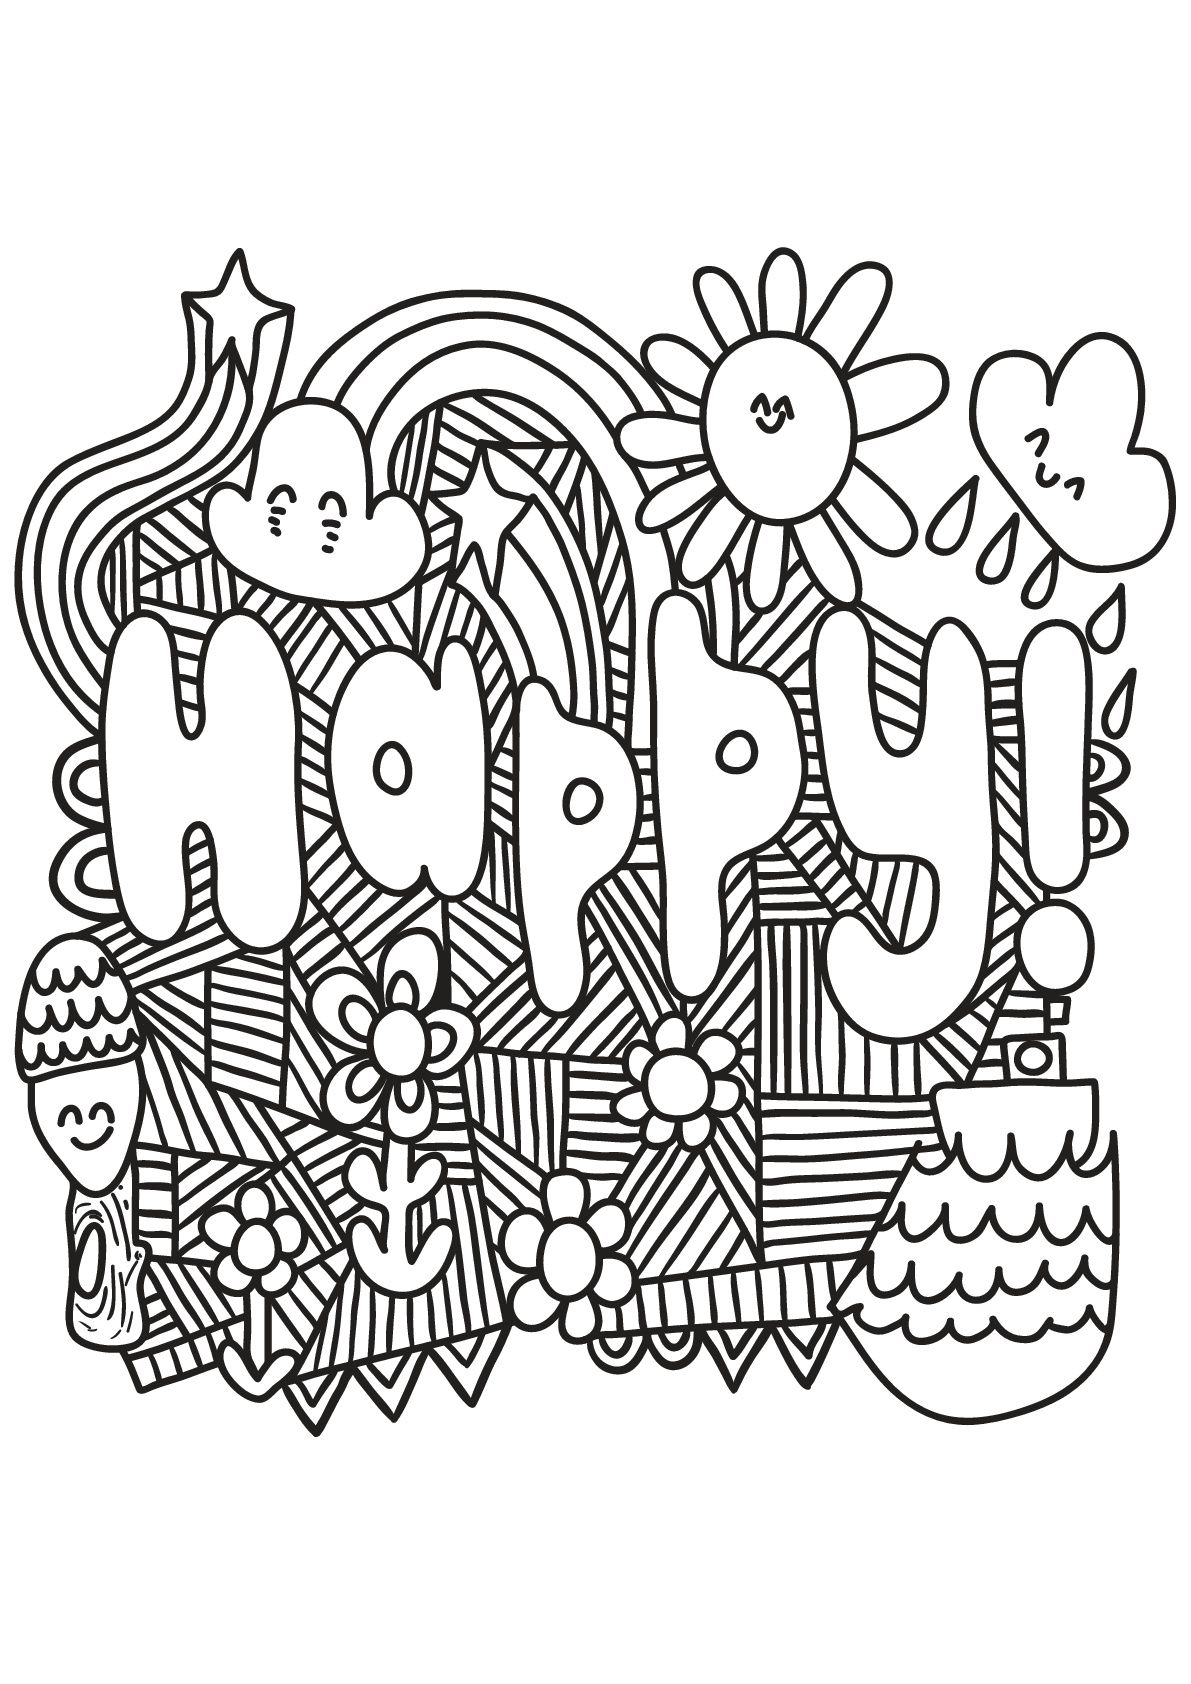 Happy From The Gallery Quotes Unicorn Coloring Pages Quote Coloring Pages Coloring Books